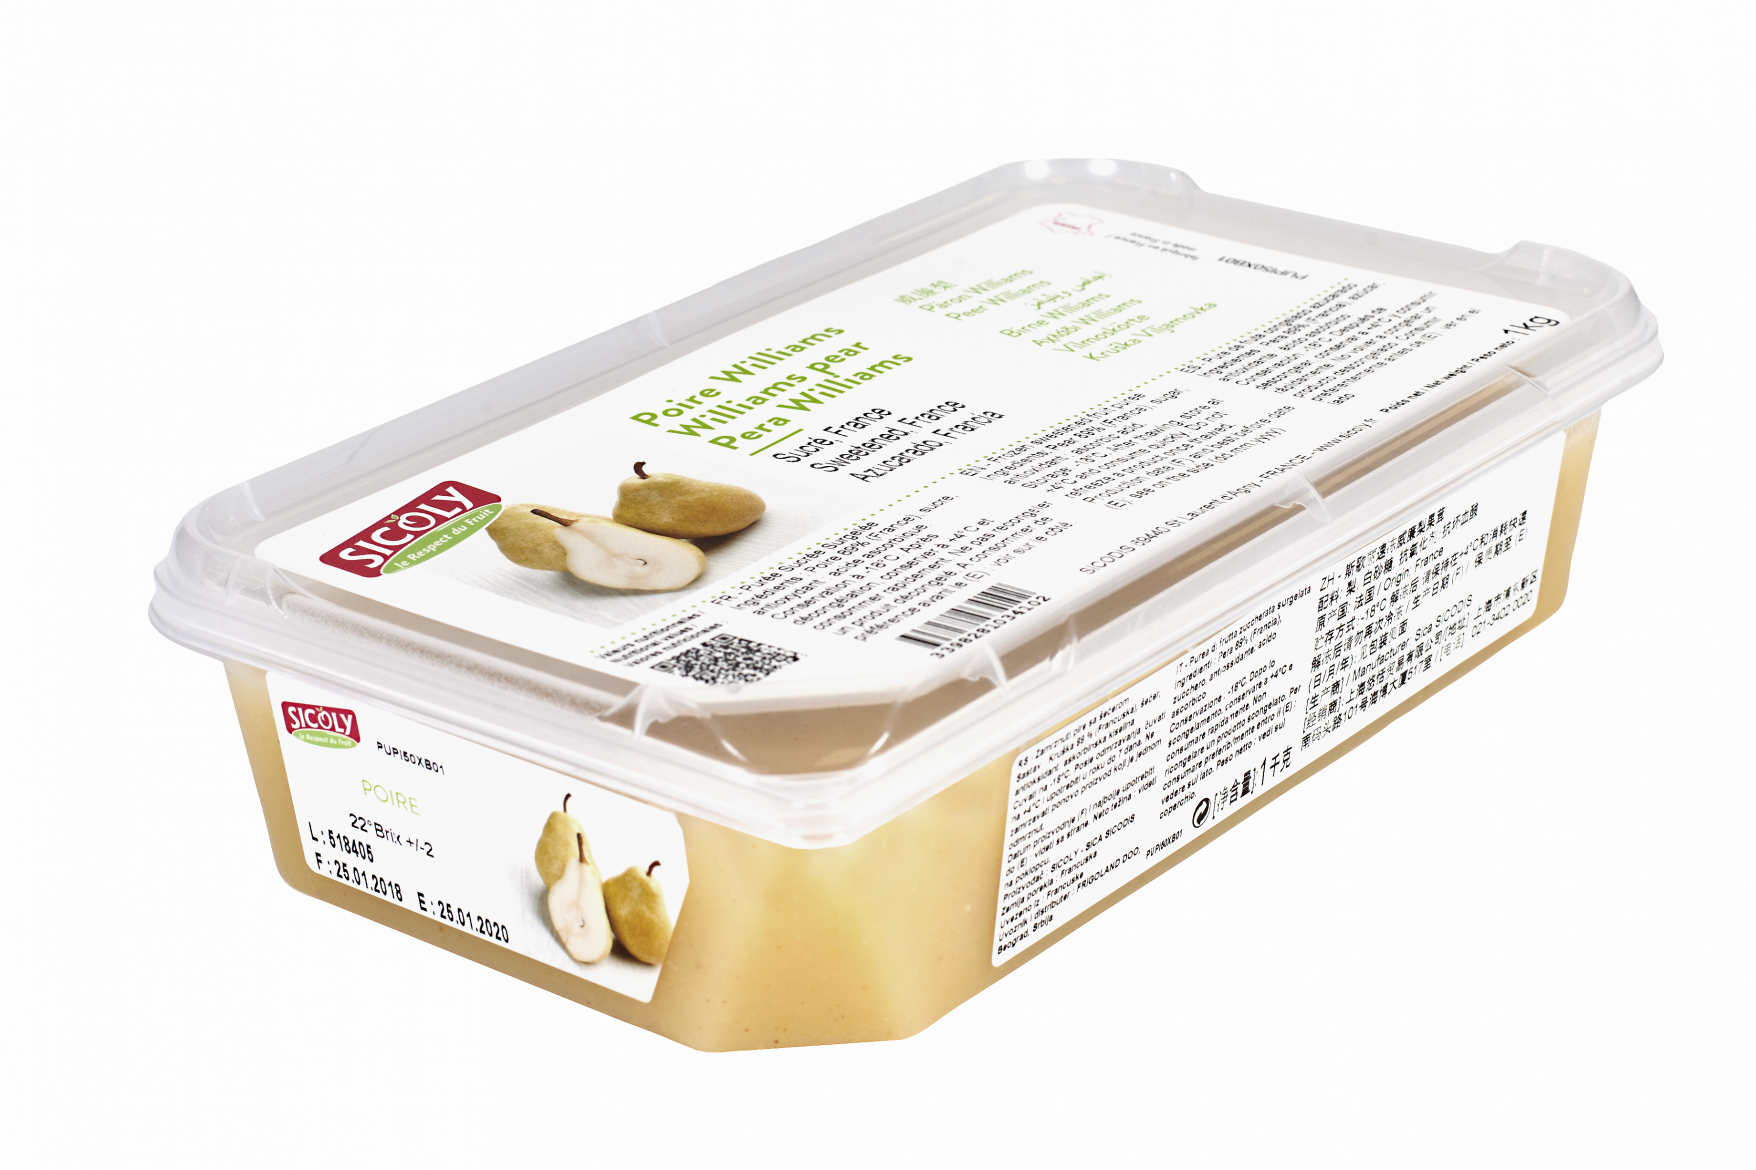 Sicoly product image Frozen Williams pear purée